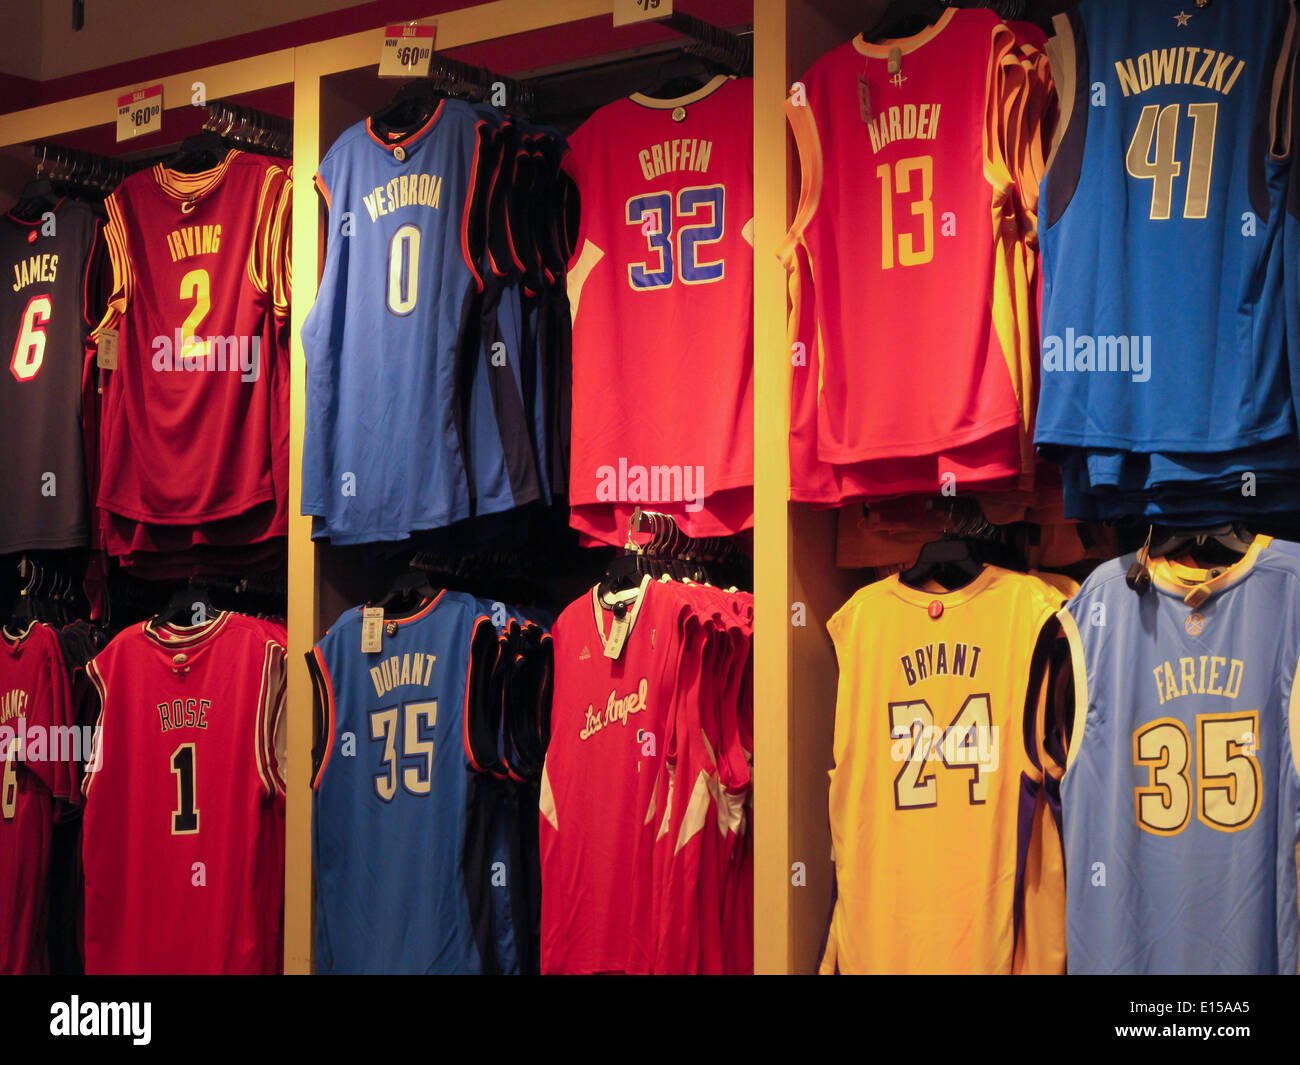 quality design 2890a 91b0f where to buy nba jerseys in stores